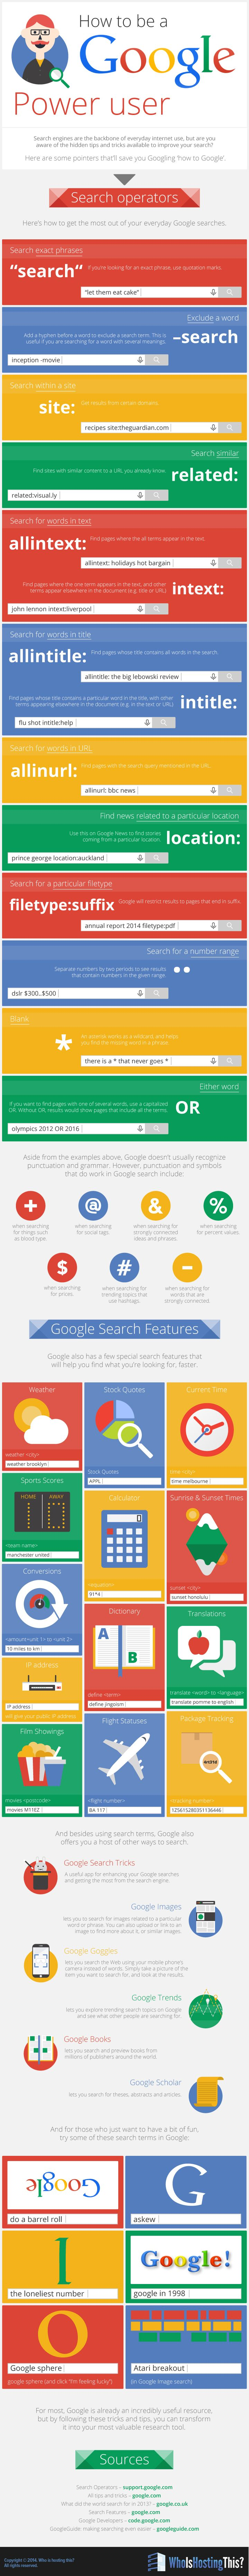 Here's some tips to use Google search more effectively #eikontechnology